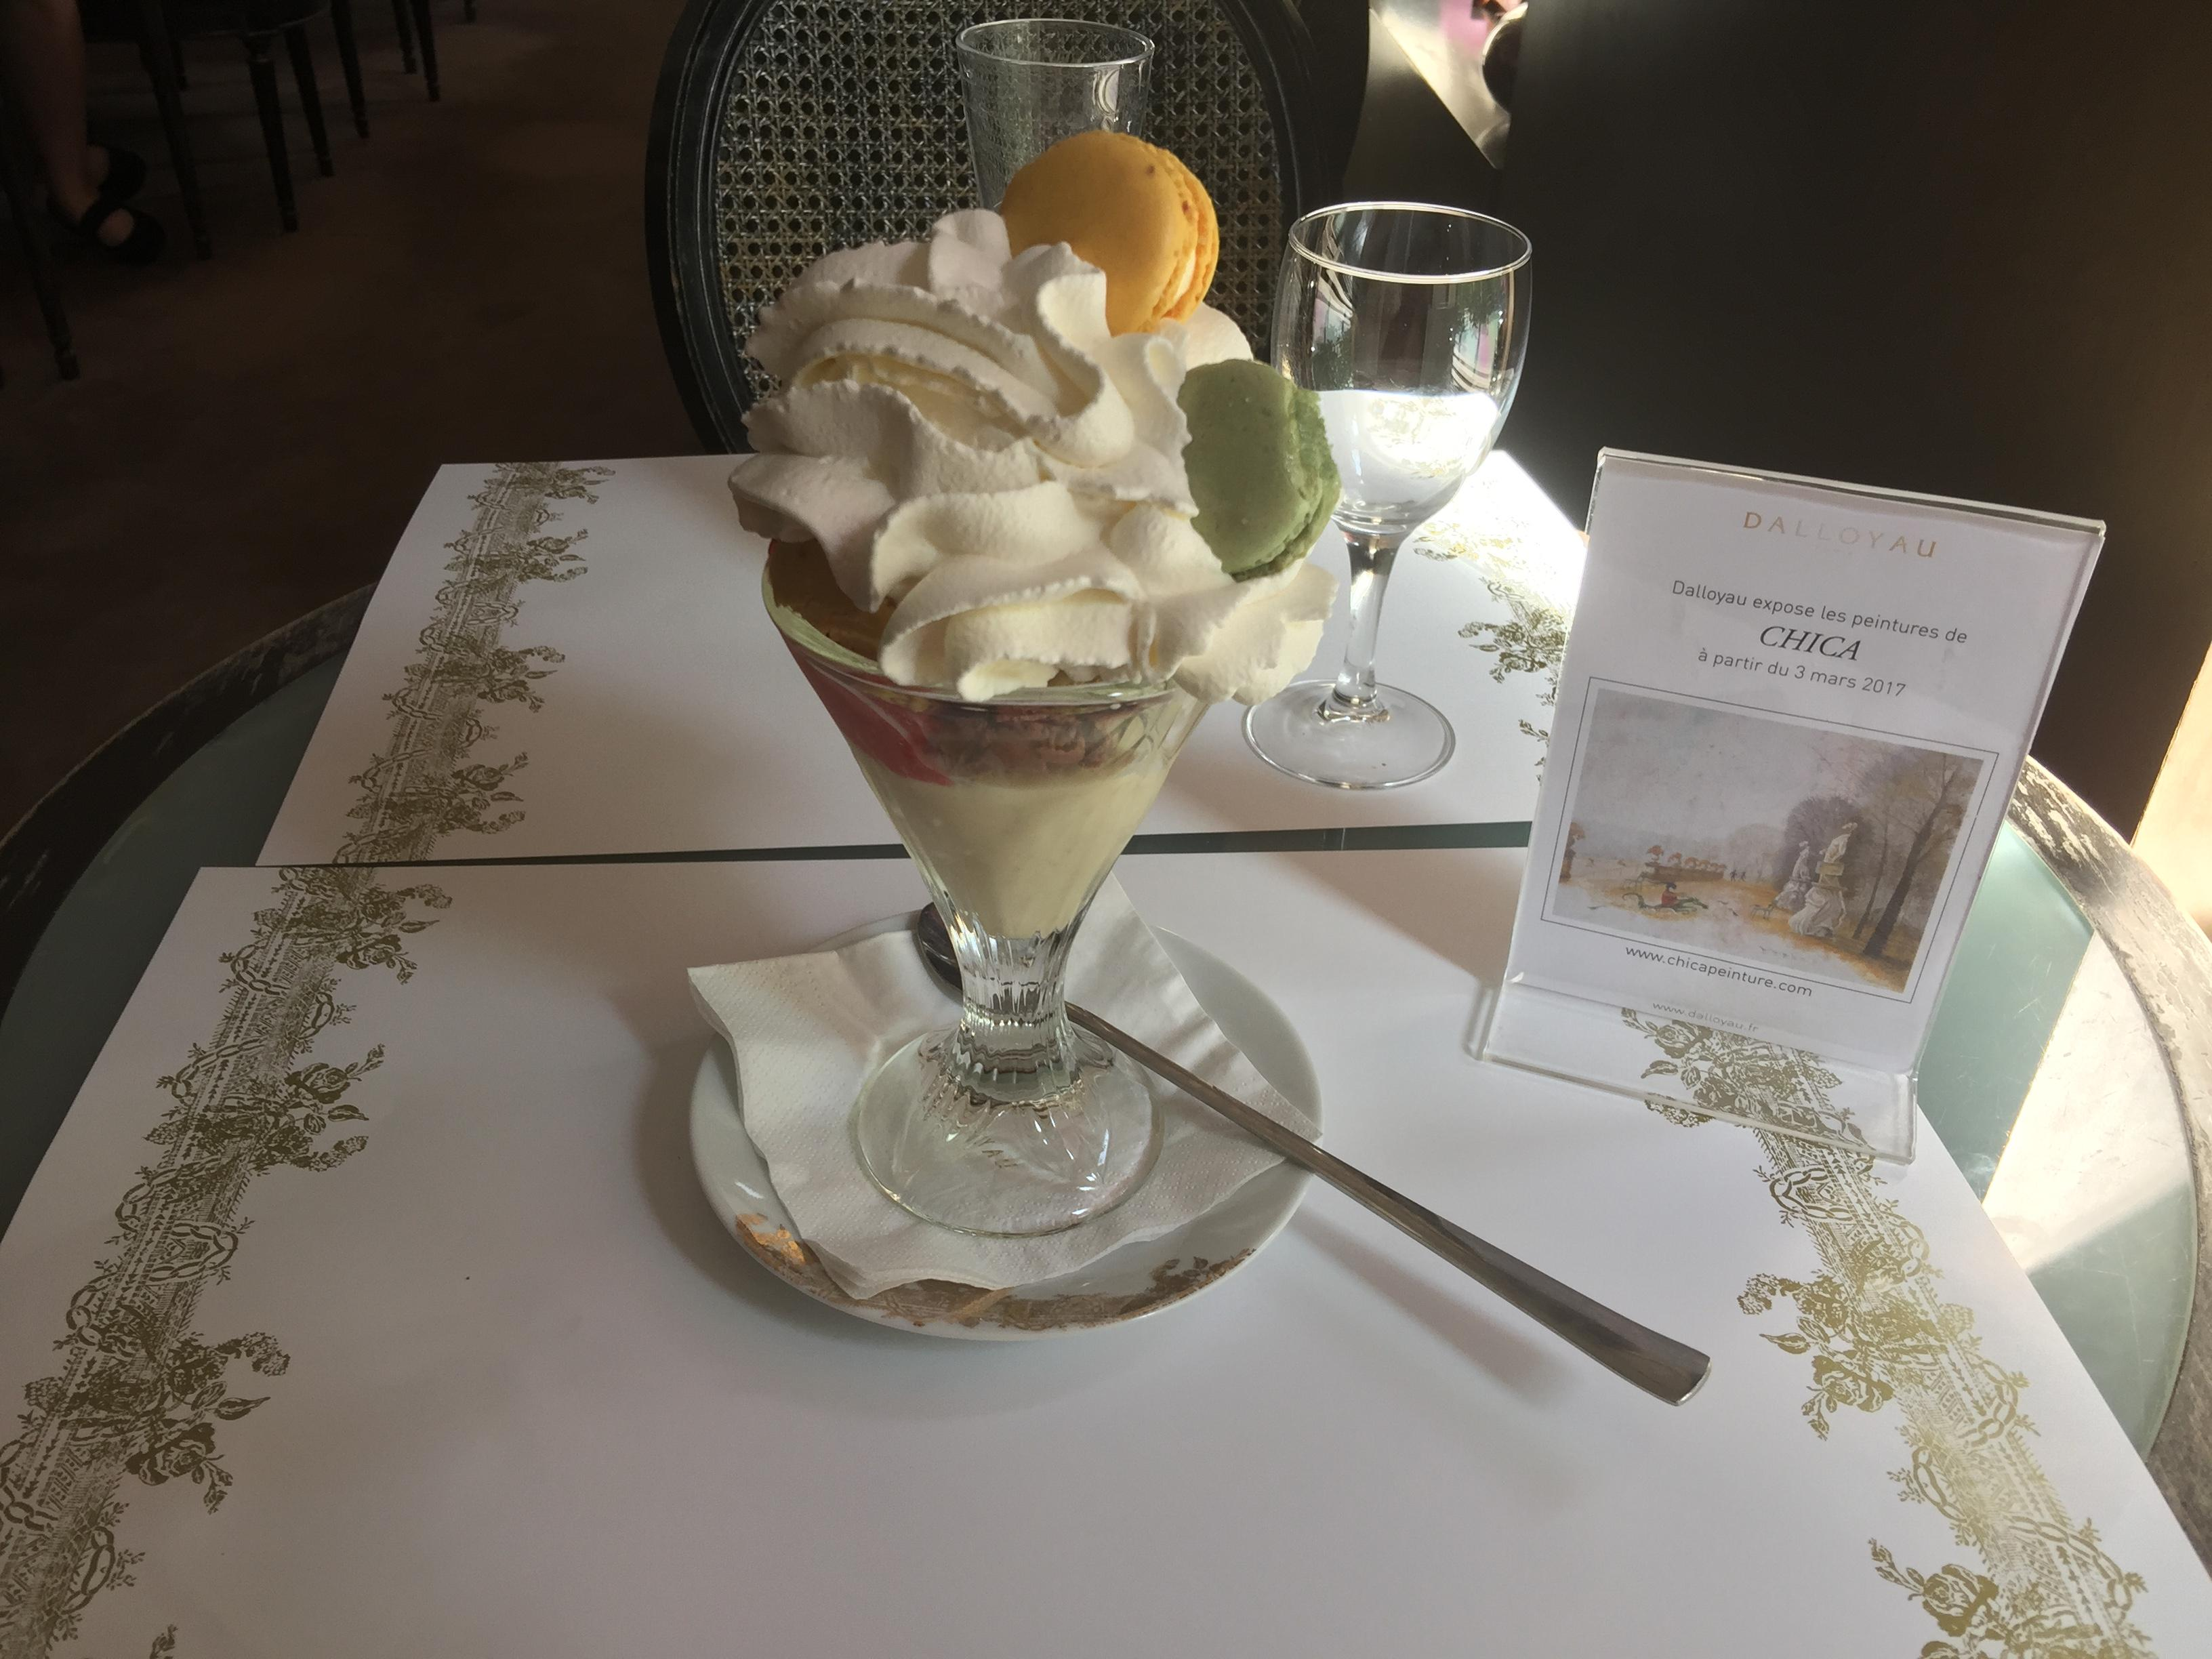 Dallayou cafe upstairs. The best ice cream in Paris. Read about the history of the place i